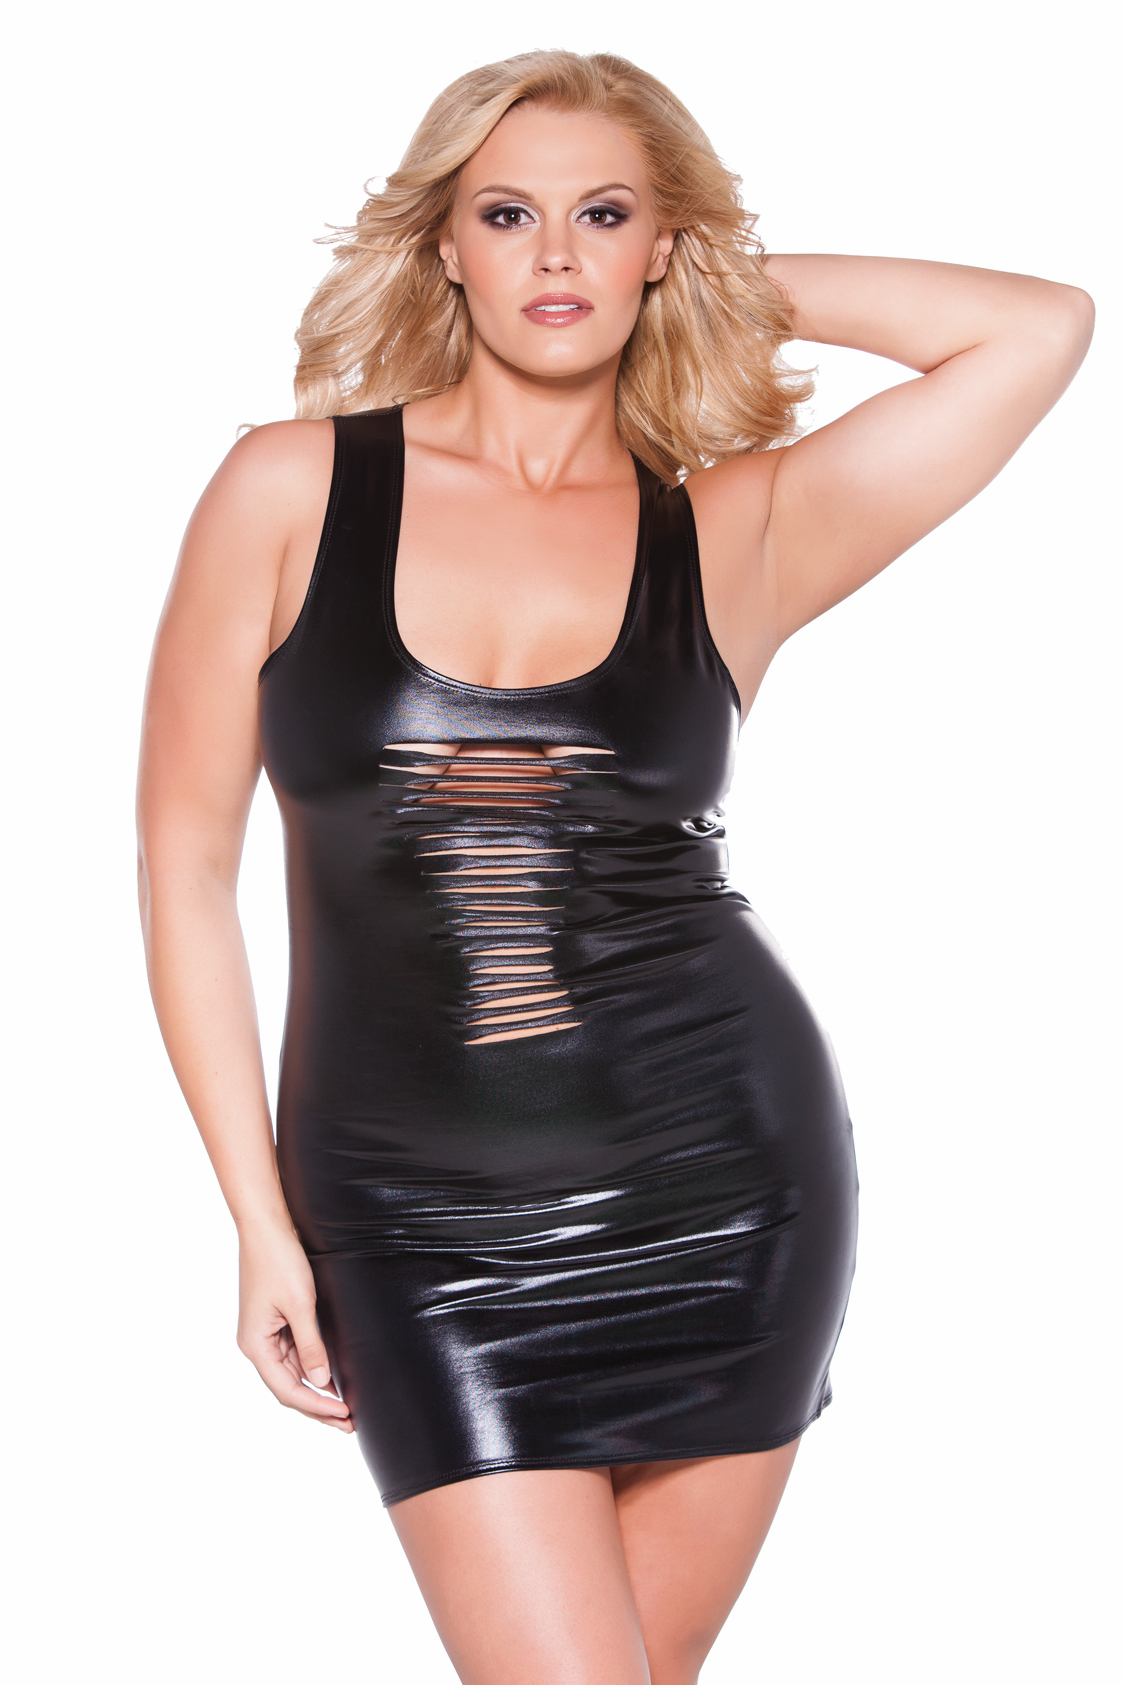 17-1082Xk Plus Size Risqué Kitten Dress by Allure